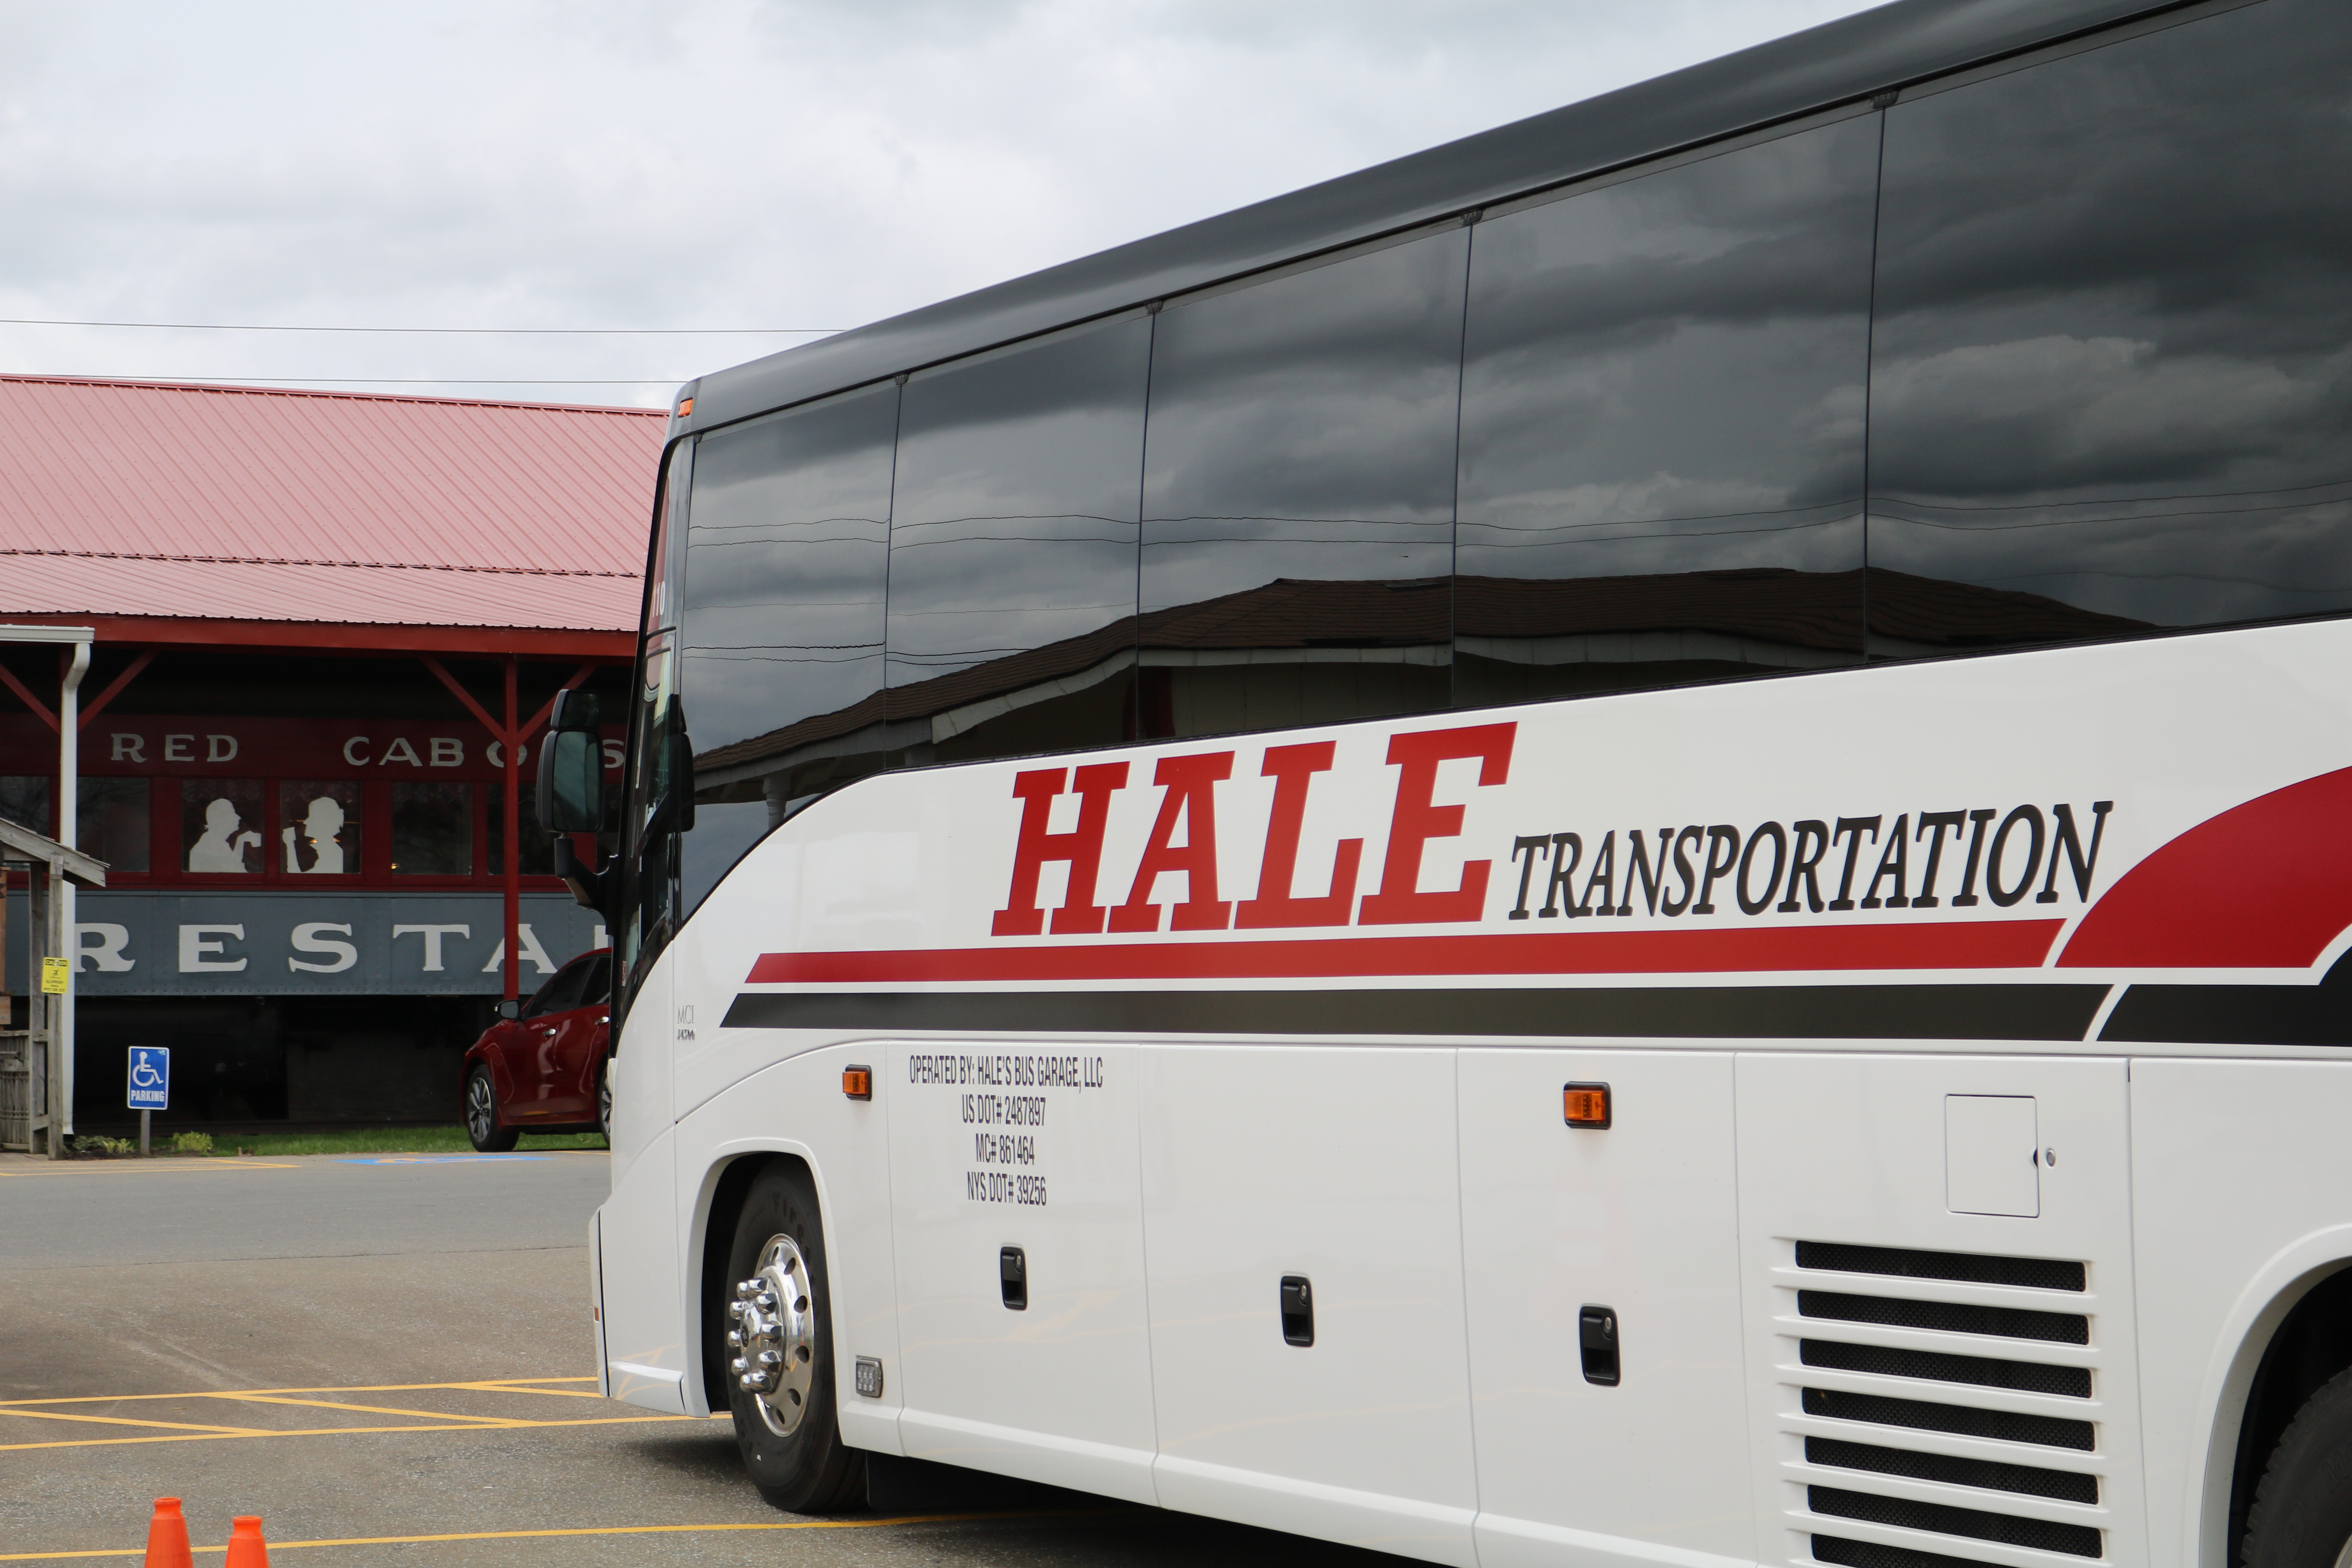 Hale transportation bus in restaurant parking lot